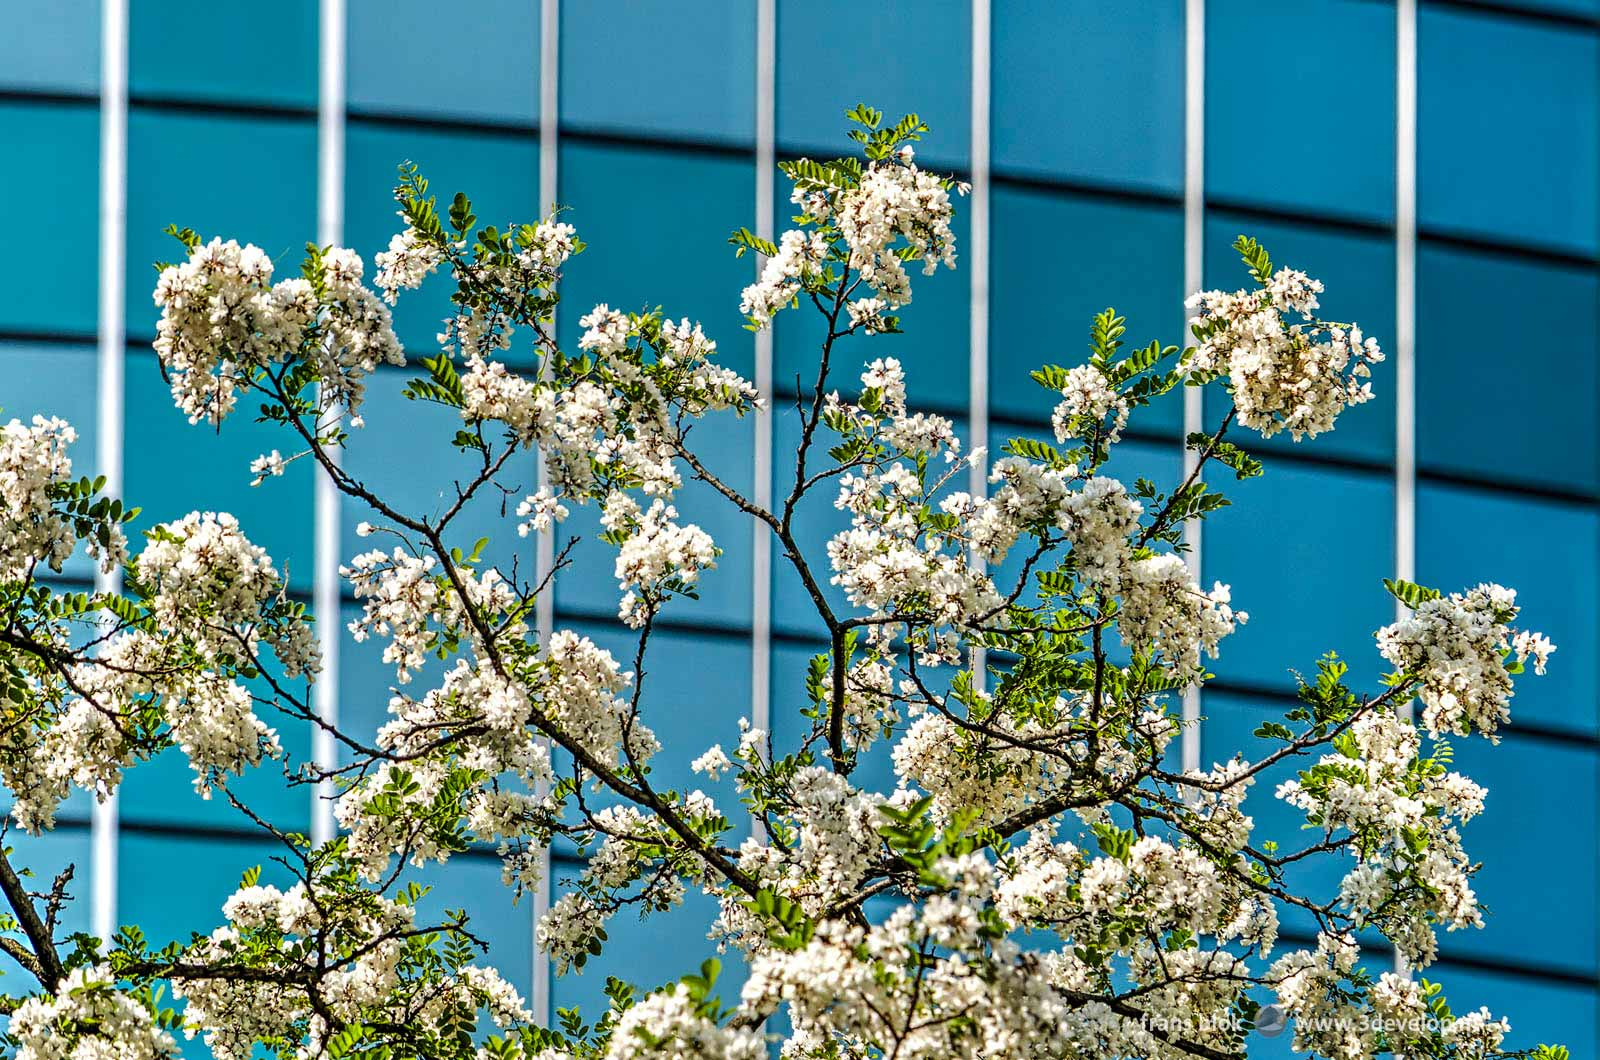 A robinia pseudoacacia or black locust in bloom in springtime, with the glass facade of the Rotterdam World Trade Center in the background